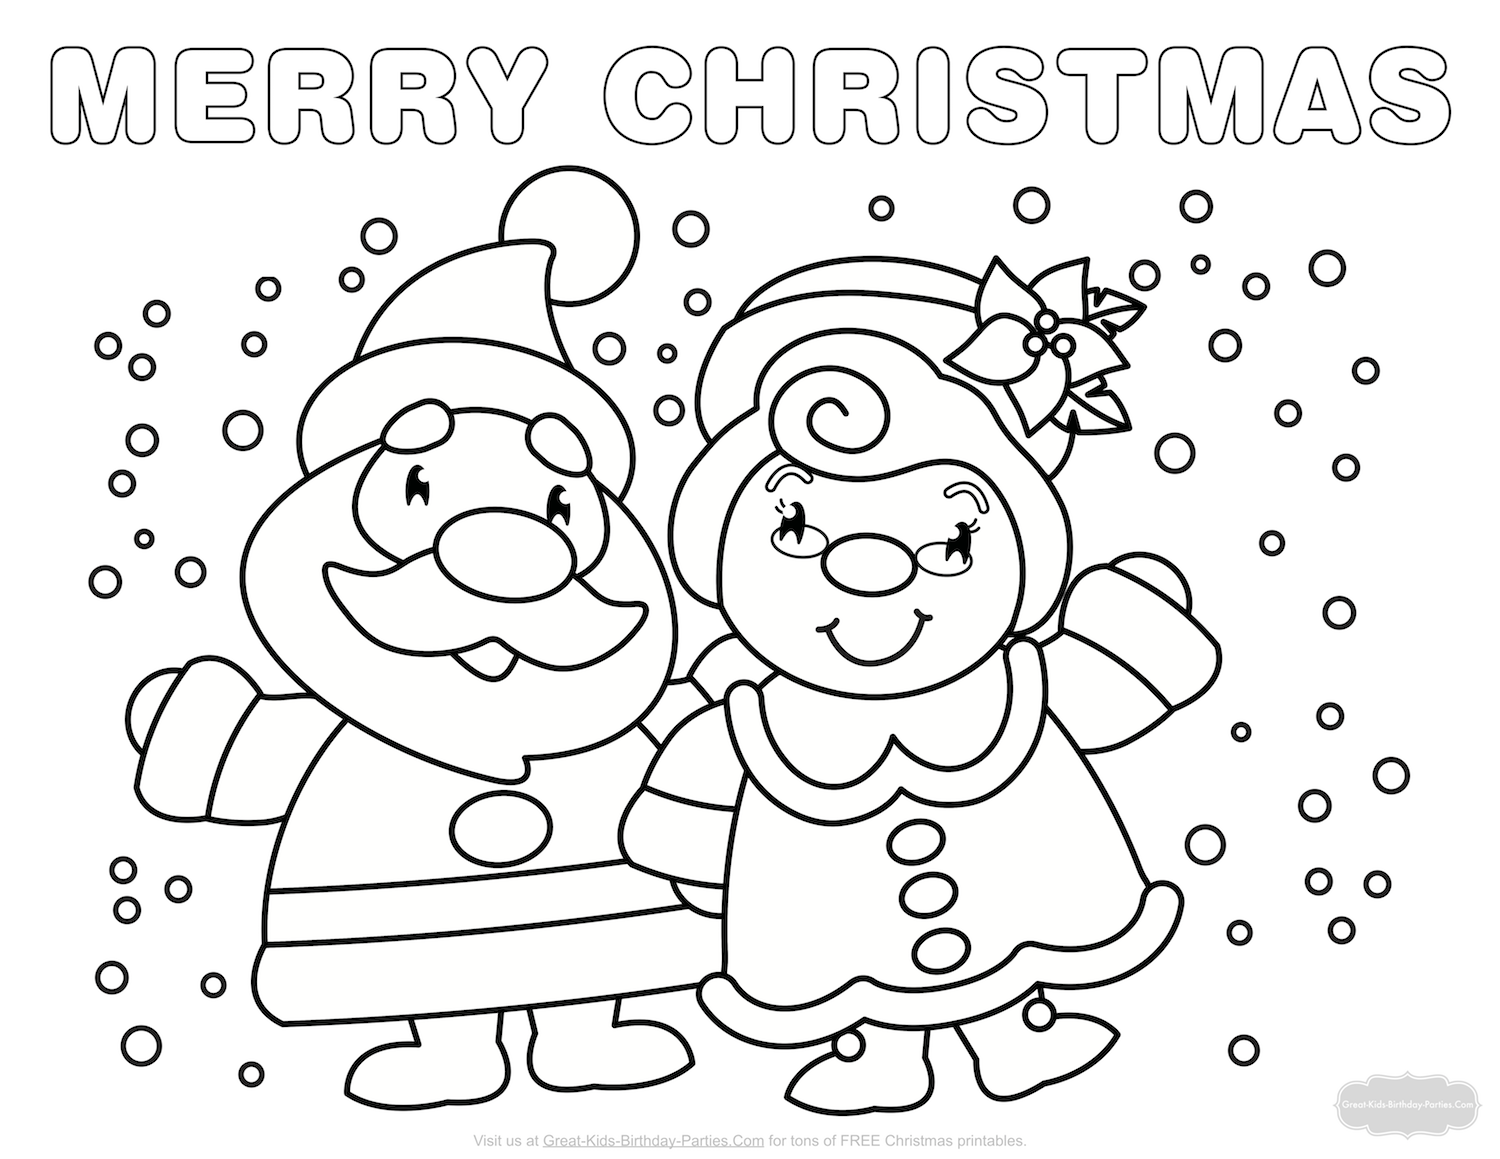 Color Santa And Mrs Claus In The Snow To Download Right Click On Your Mouse Save Computer Or Drag Desktop Mac Users